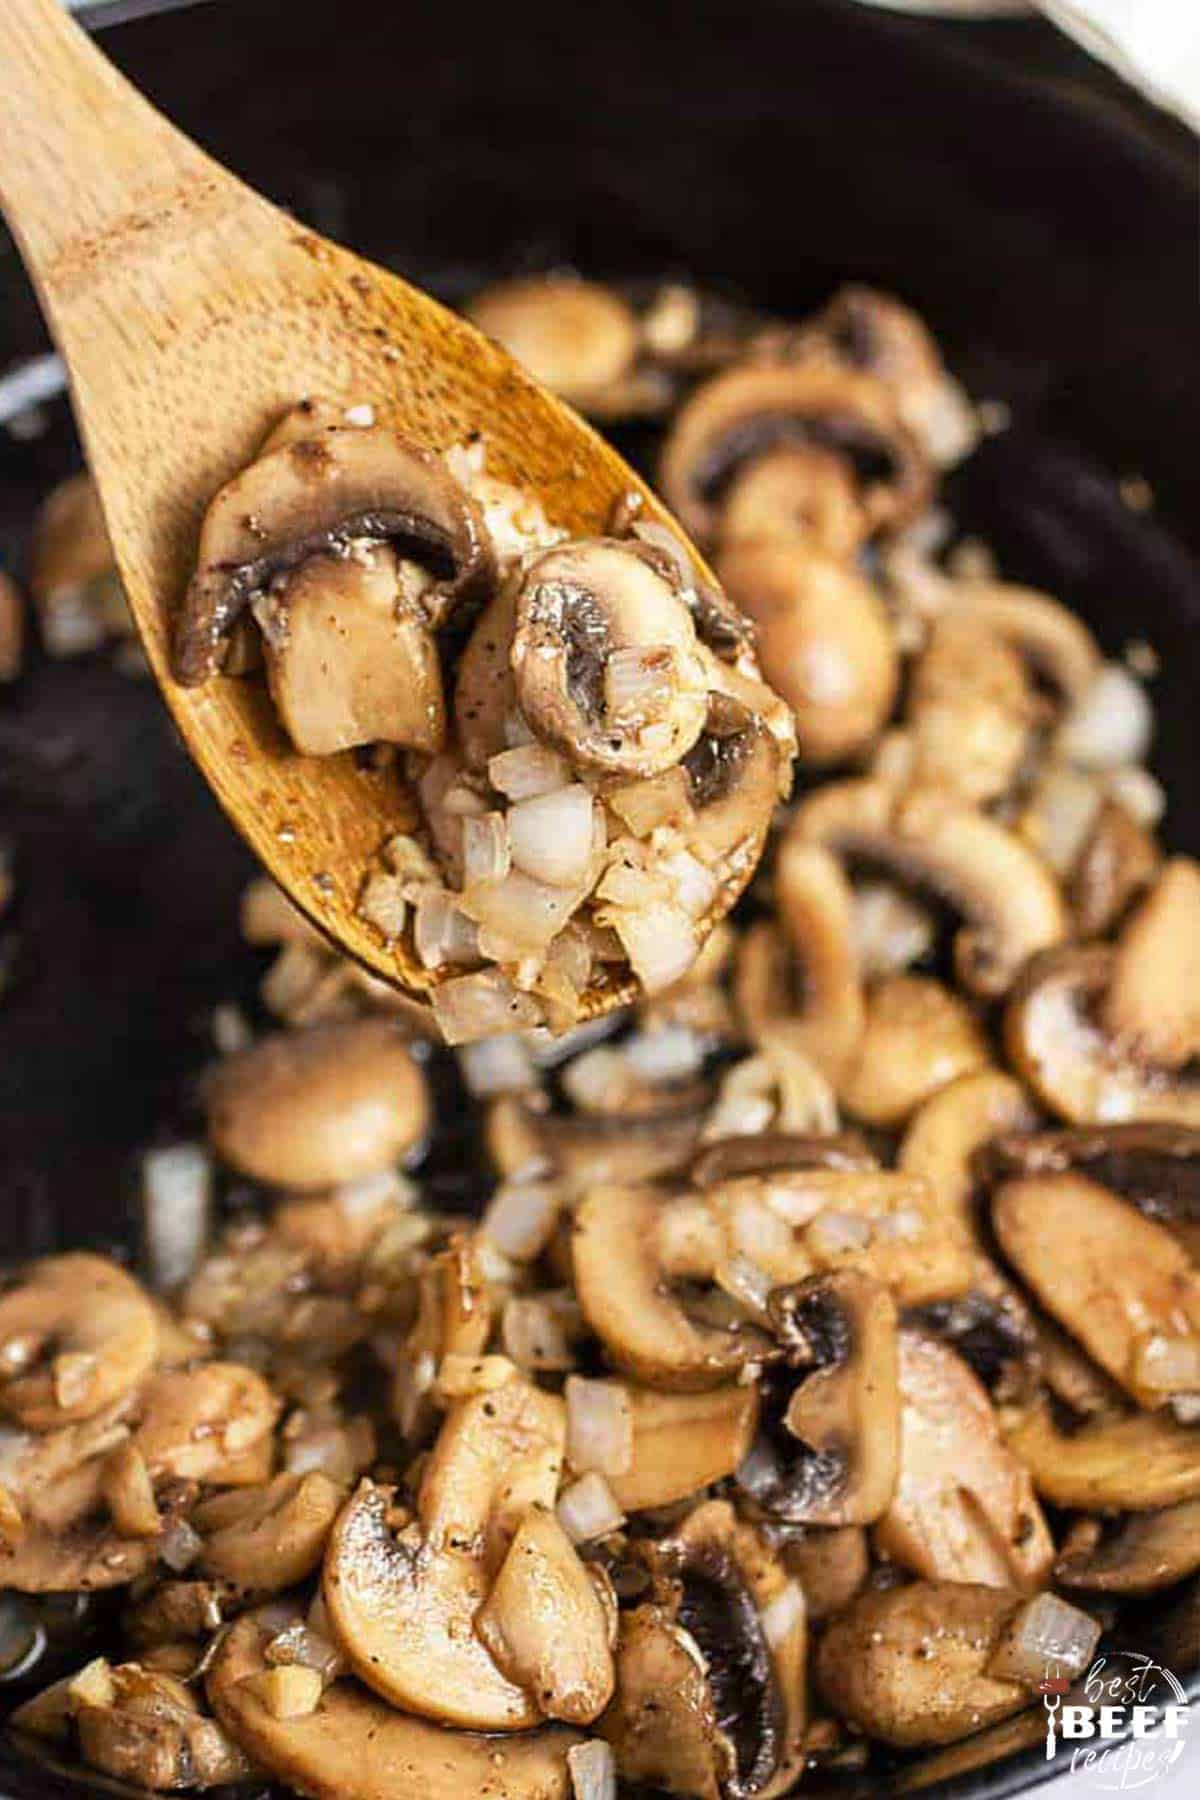 Mushrooms in a skillet